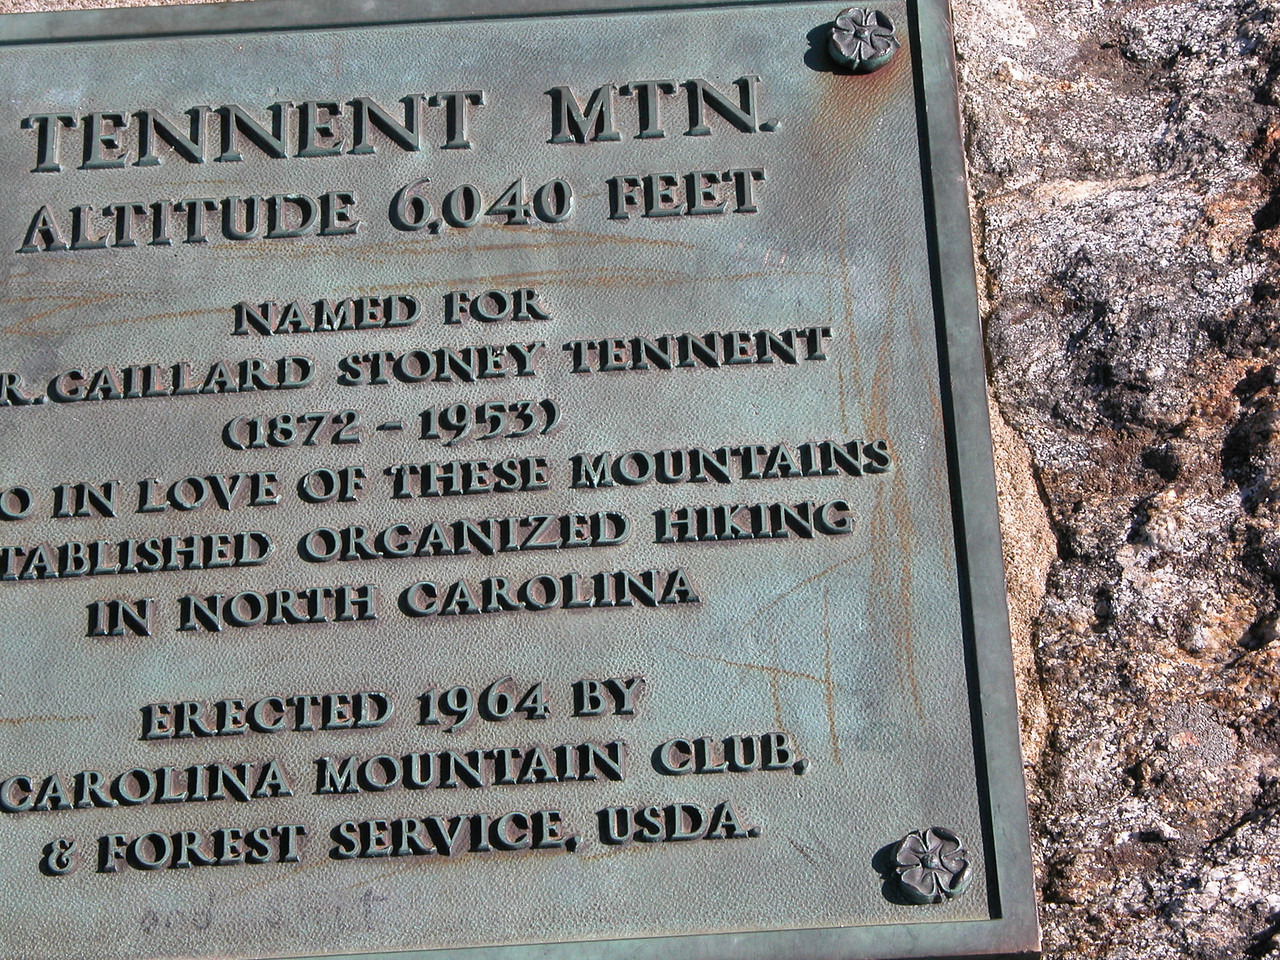 Another poor shot of the Tennent Mtn. summit plaque. Second time is NOT the charm......